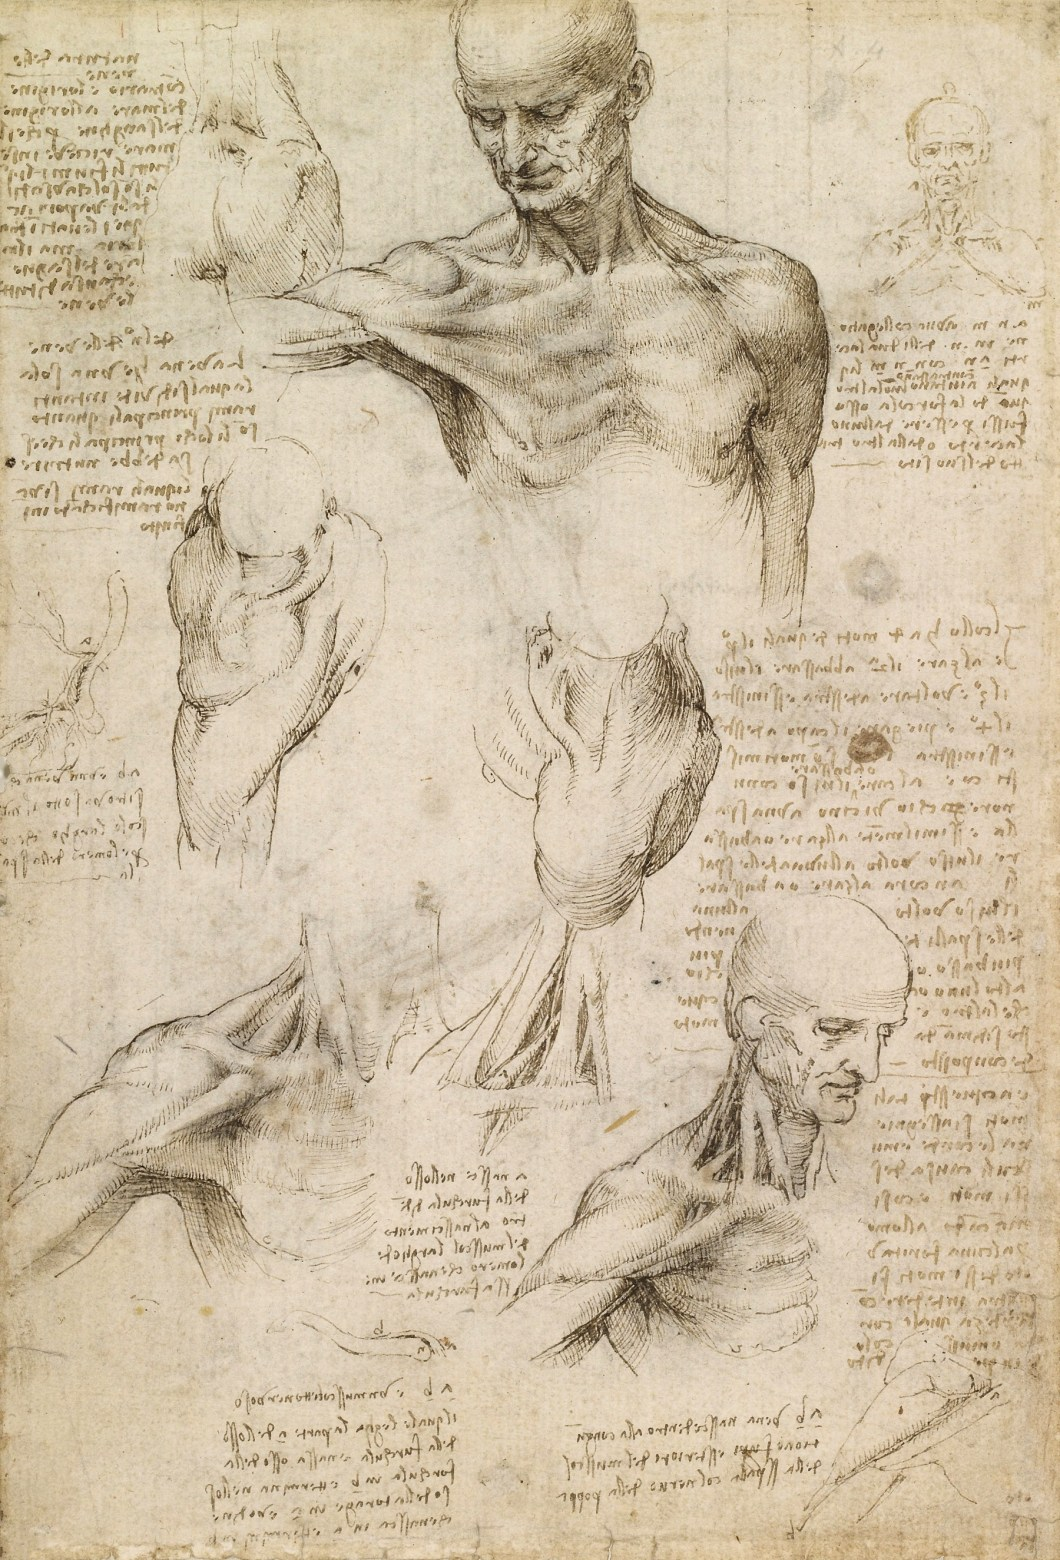 Da Vinci's Anatomical Sketch of a Male Shoulder